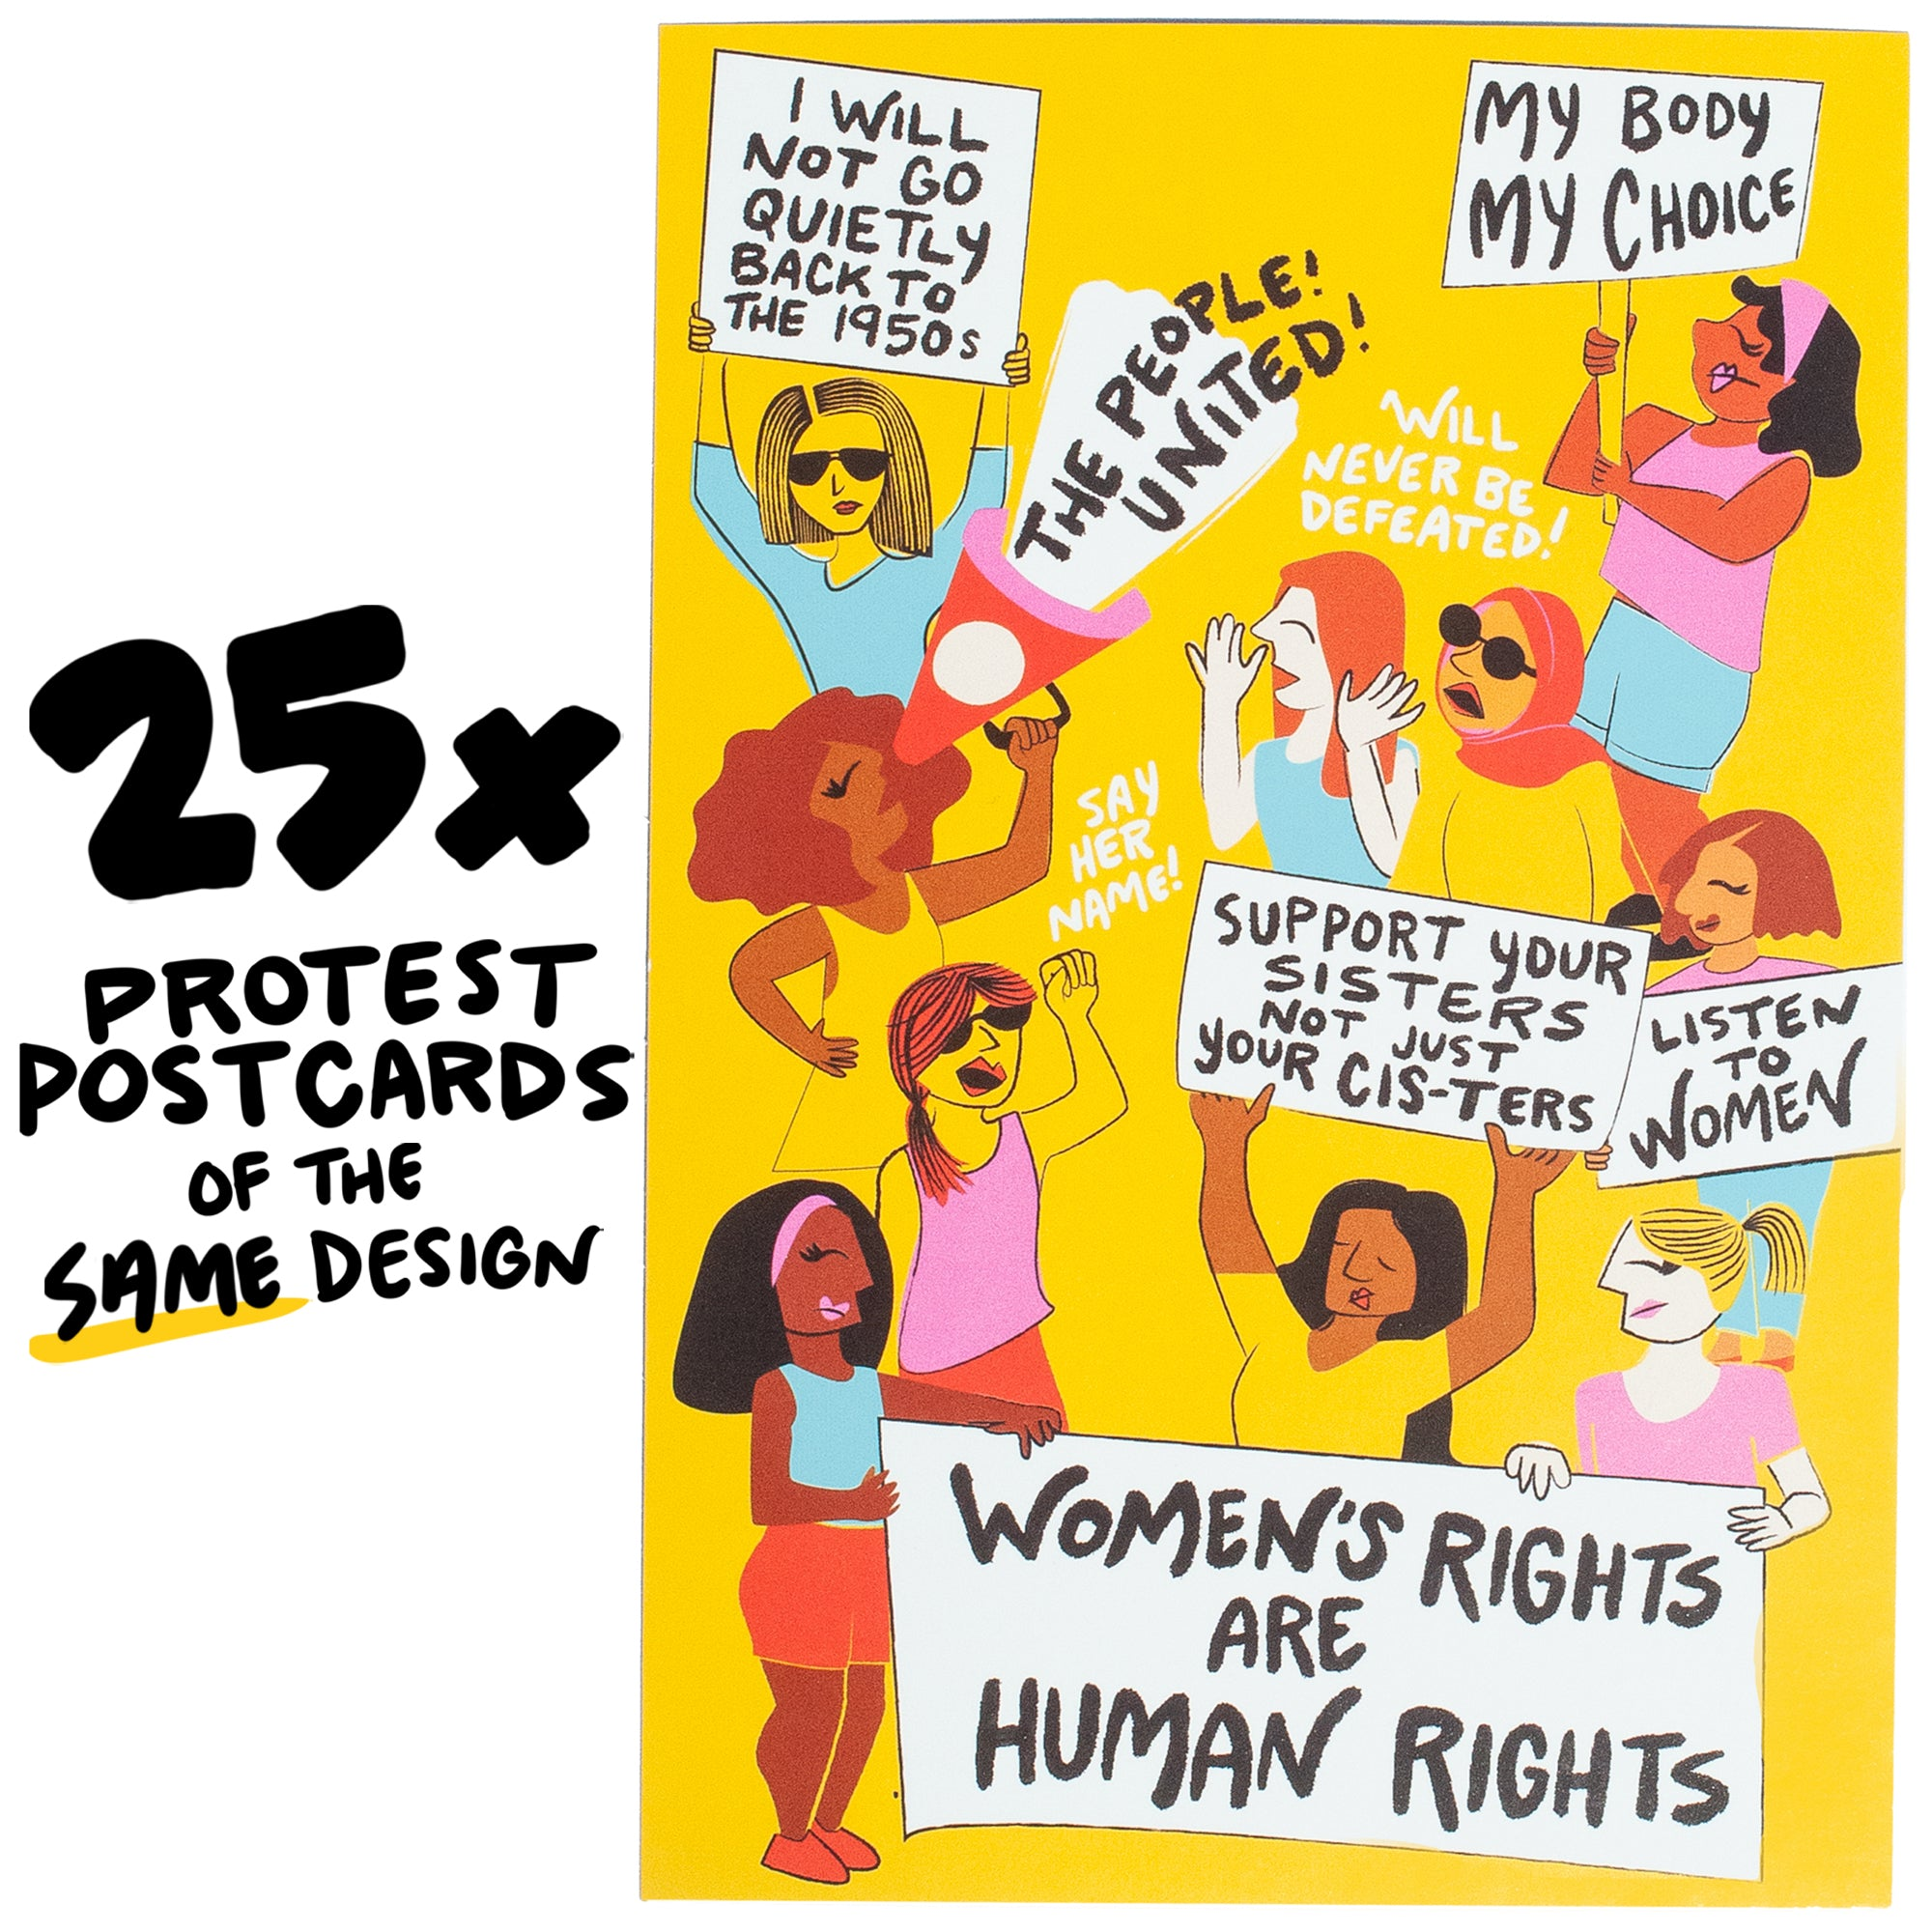 25x Ladies Rally Protest Postcard